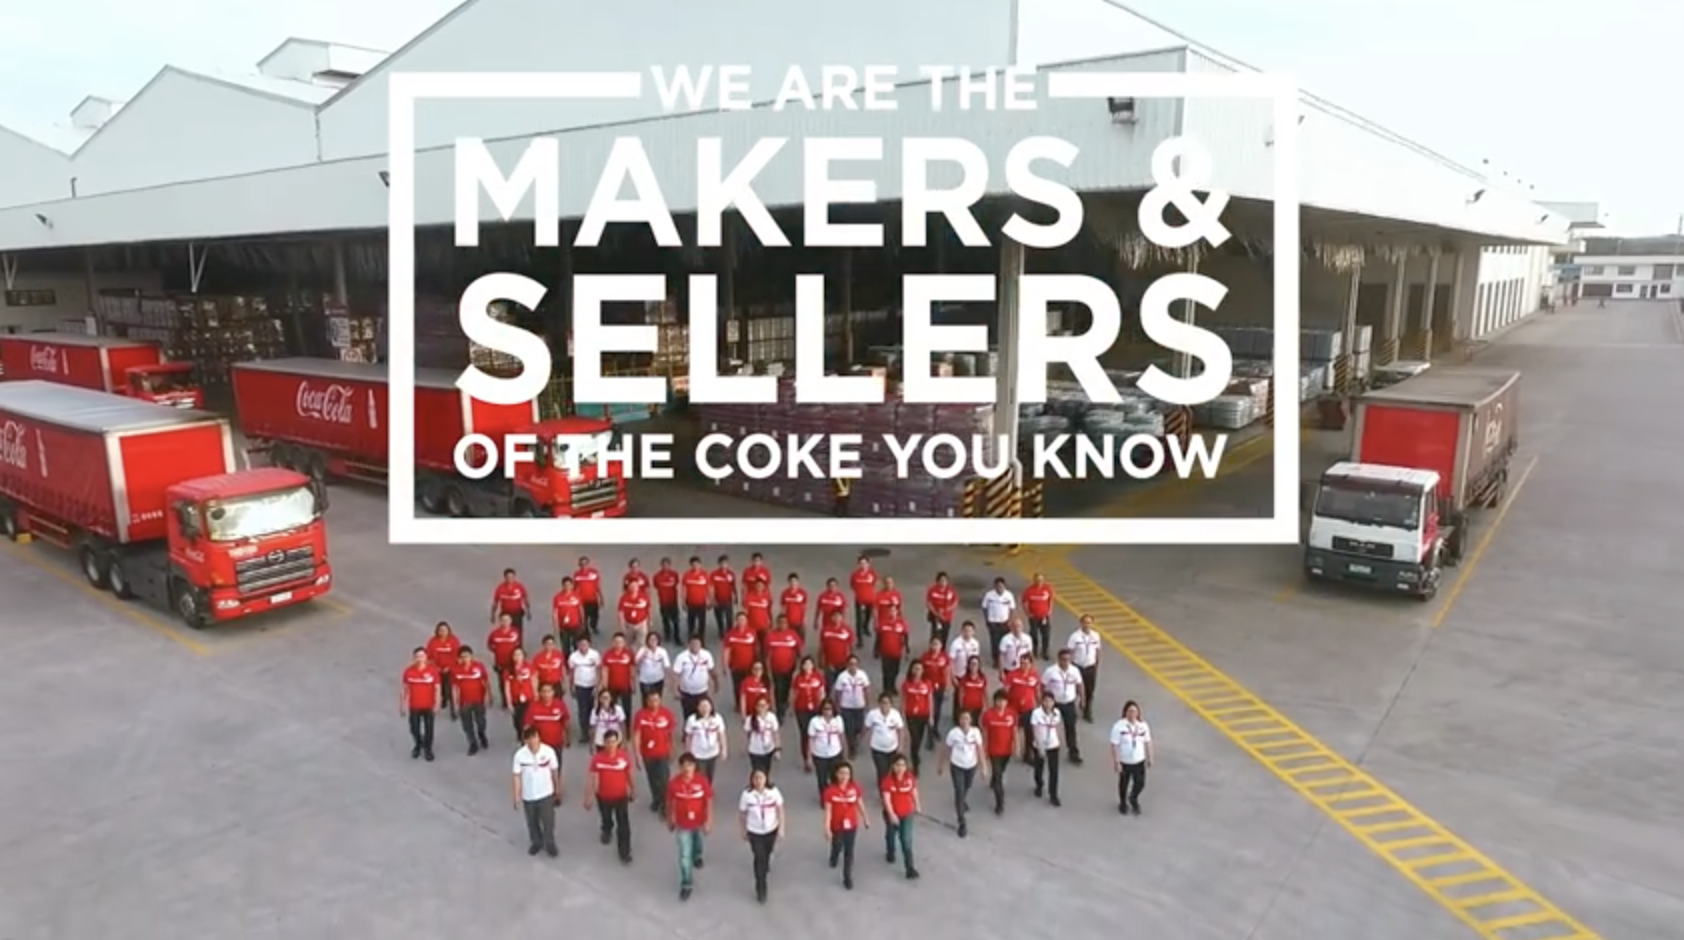 makers and sellers of coca cola femas phillipines